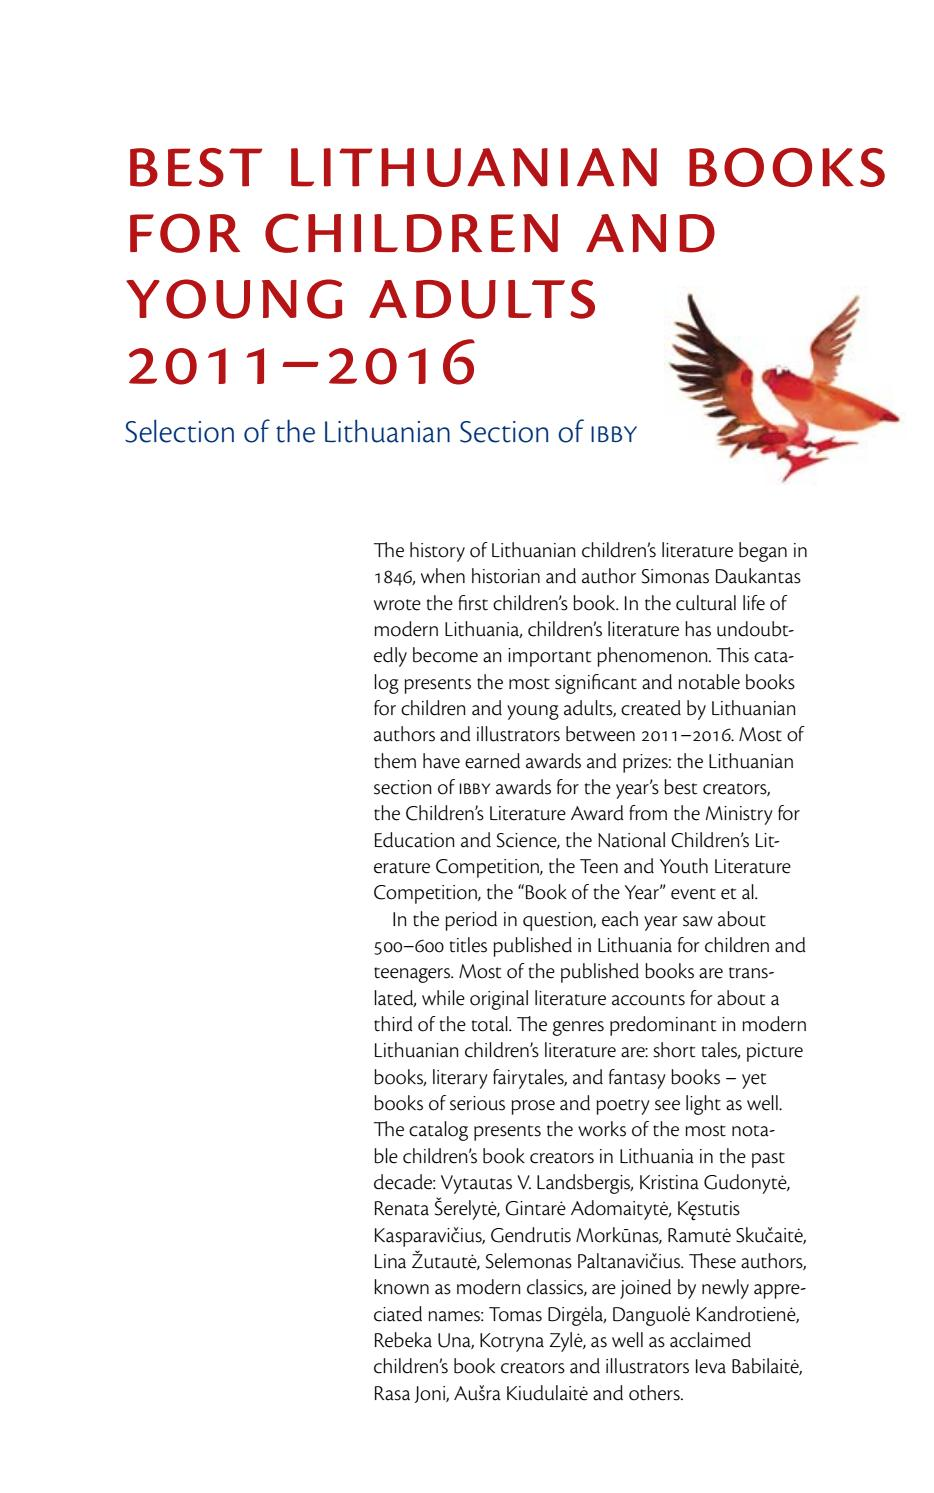 BEST LITHUANIAN BOOKS FOR CHILDREN AND YOUNG ADULTS 2011